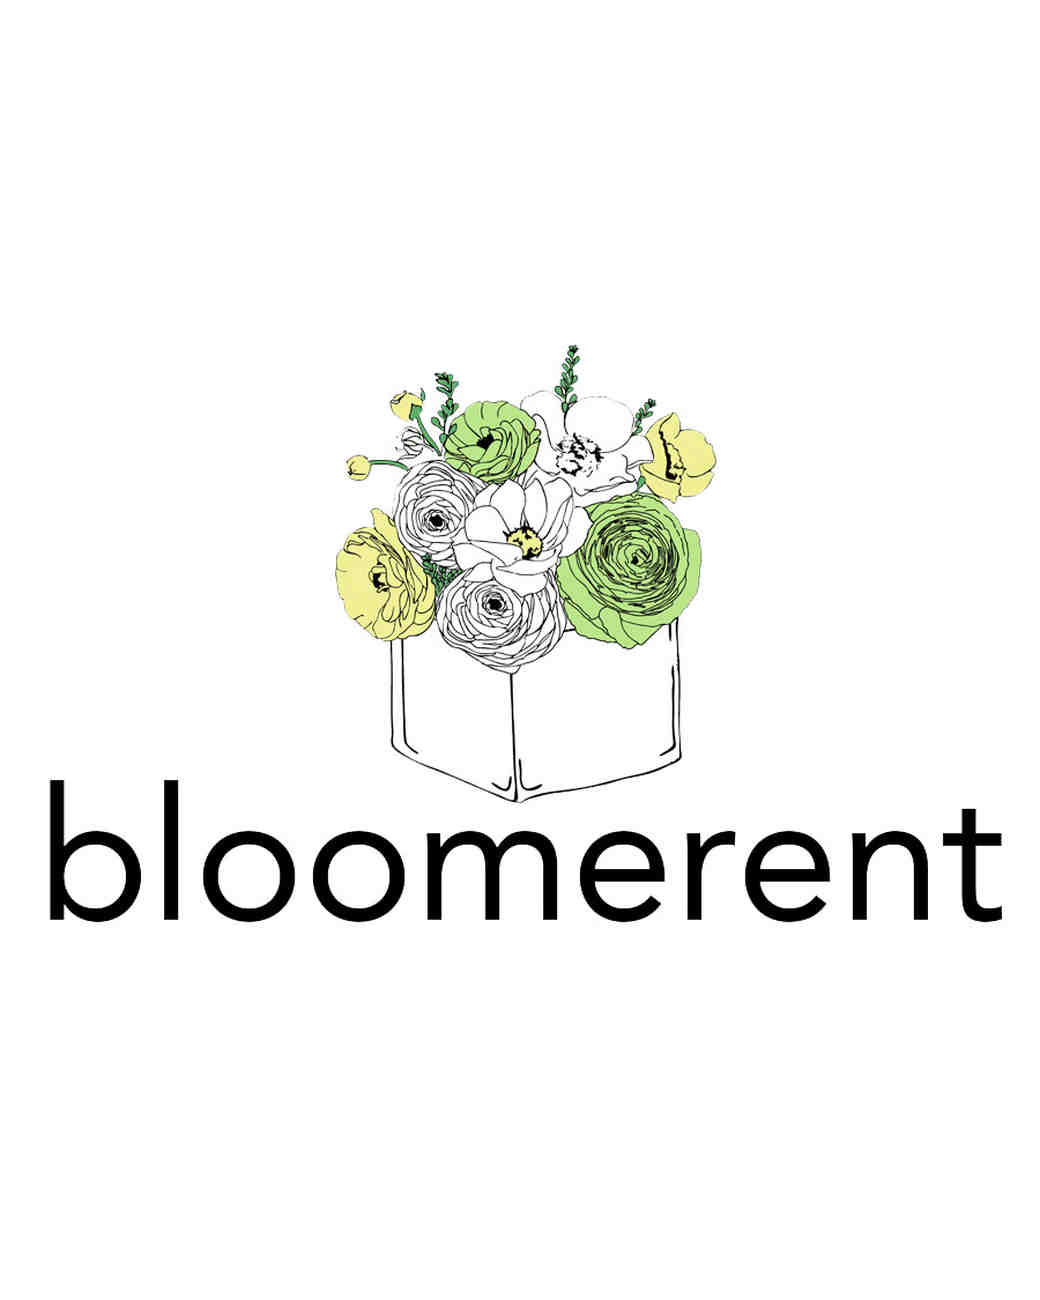 bloomerent logo